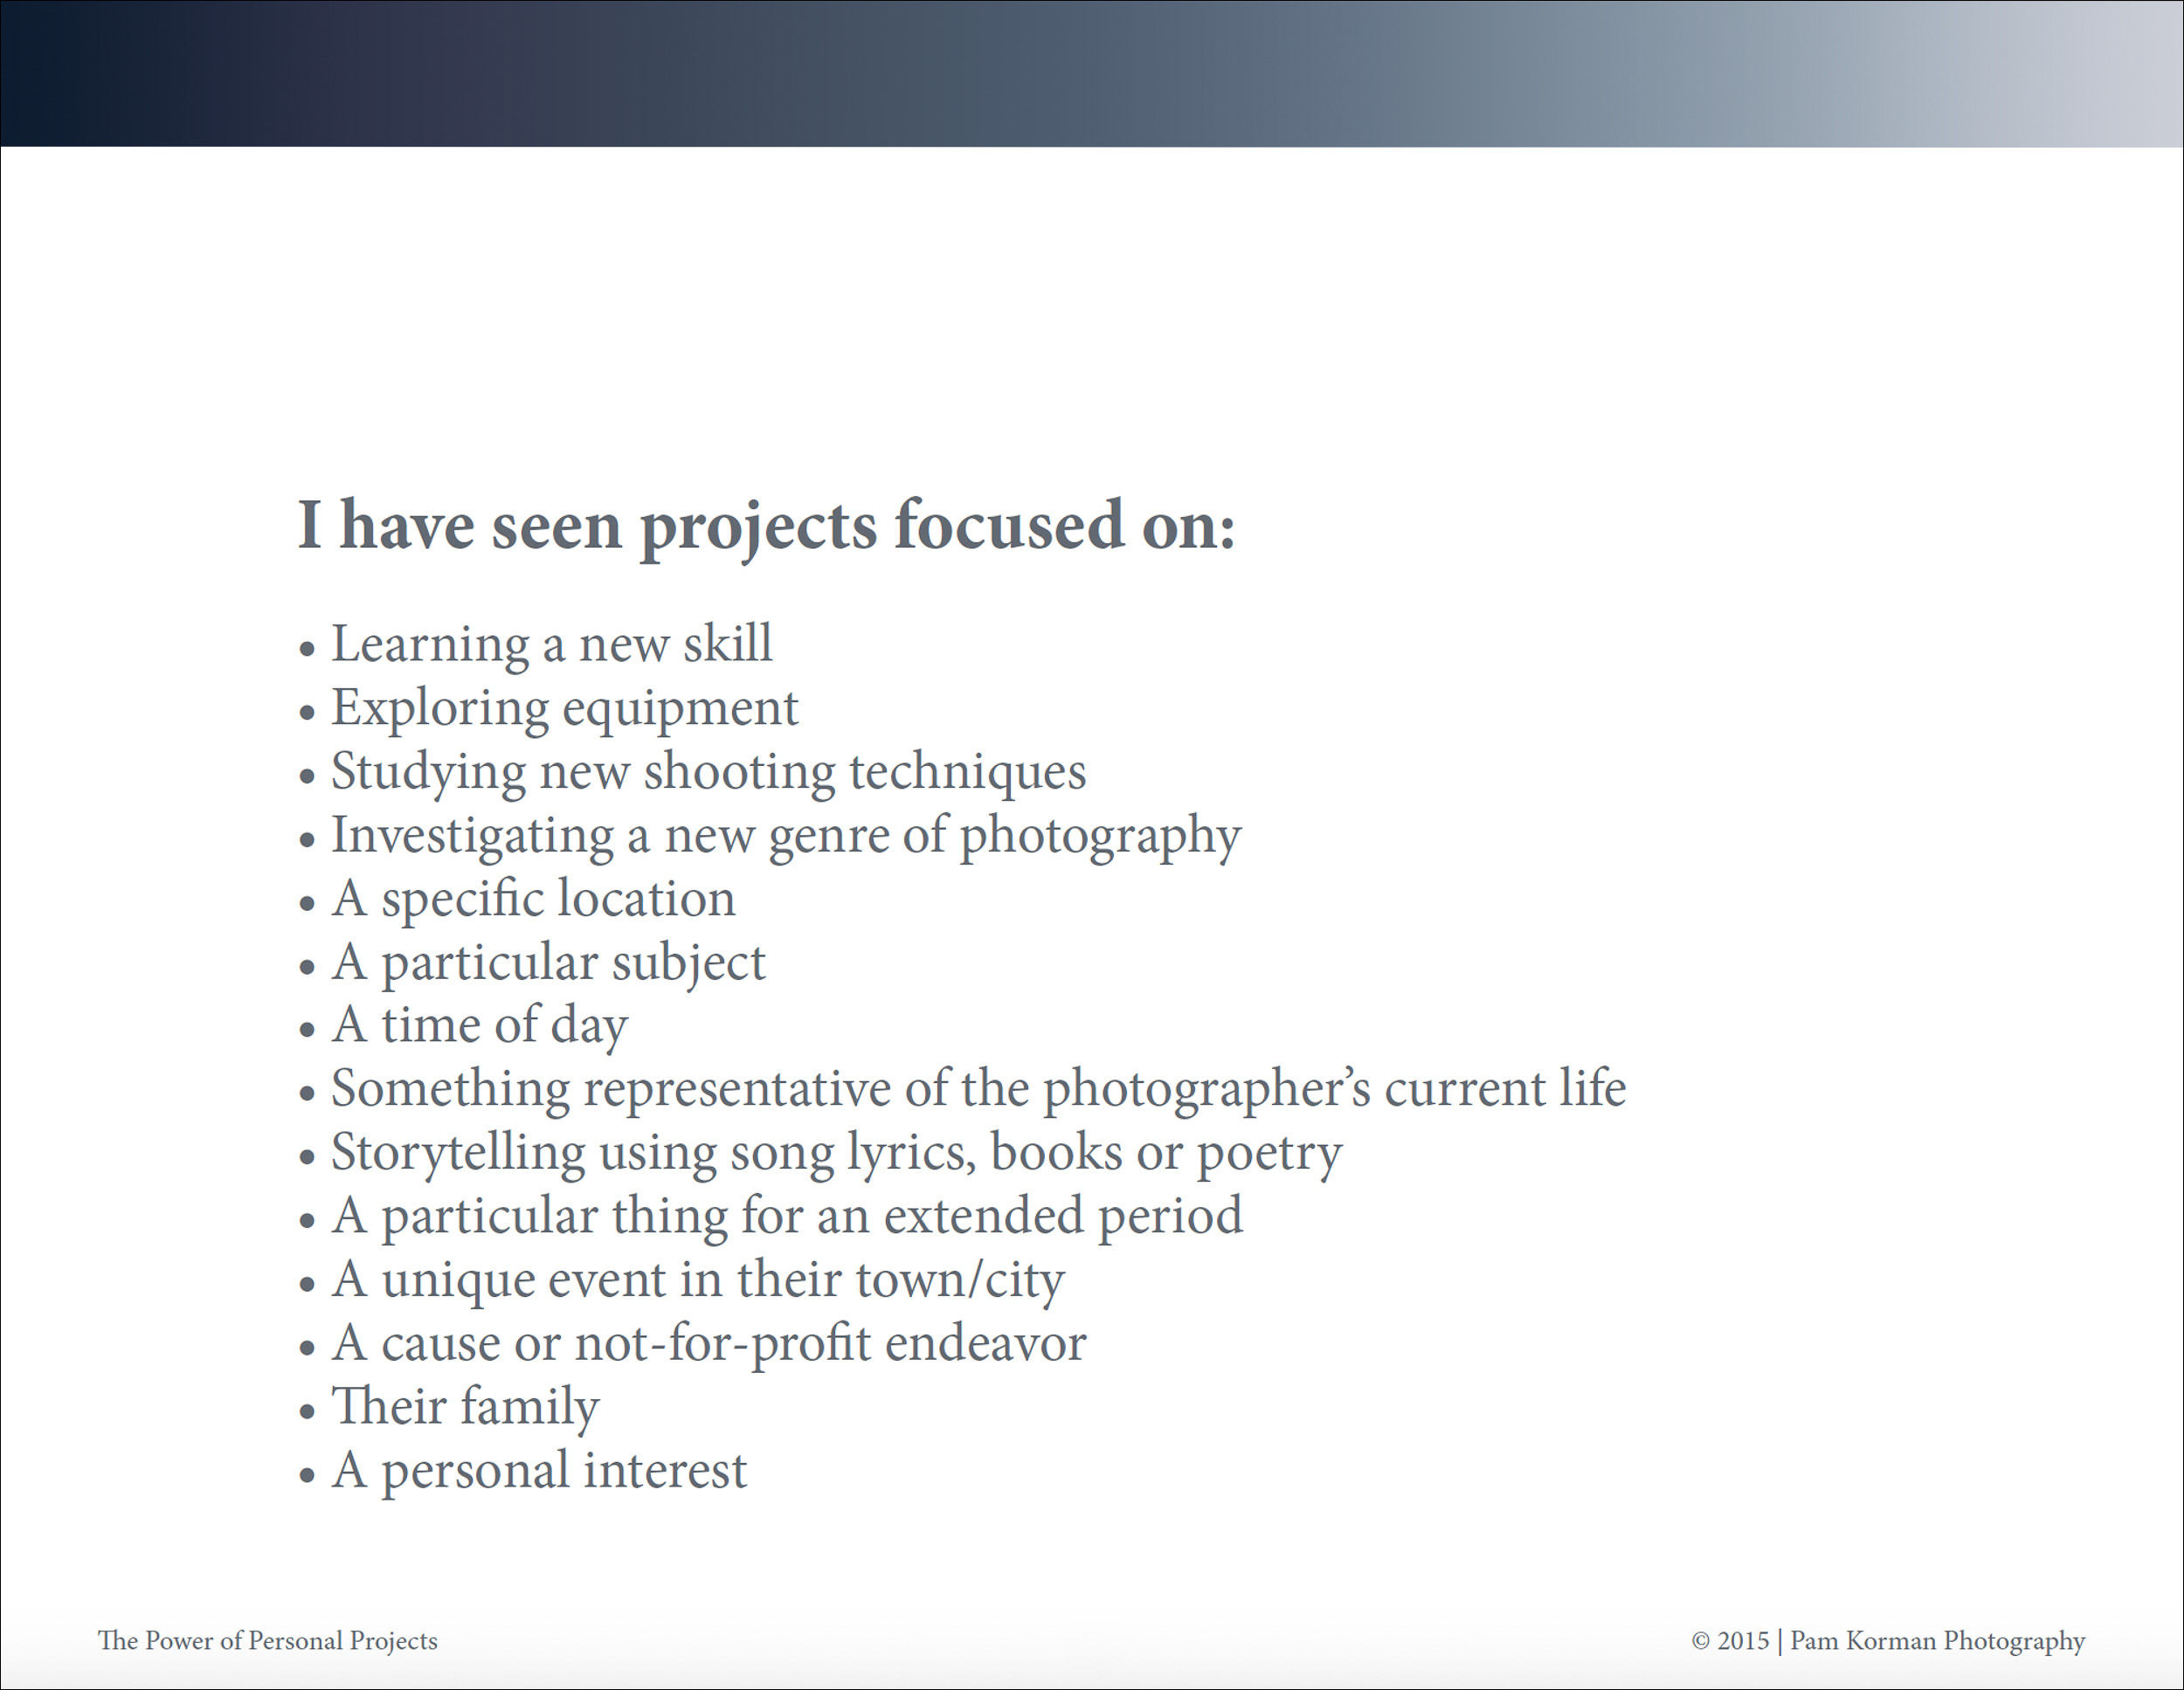 pam_korman_photography-the_ power_of_personal_projects_photography_workshop-artist_statement_photographic_bodies_of_work-23.jpg